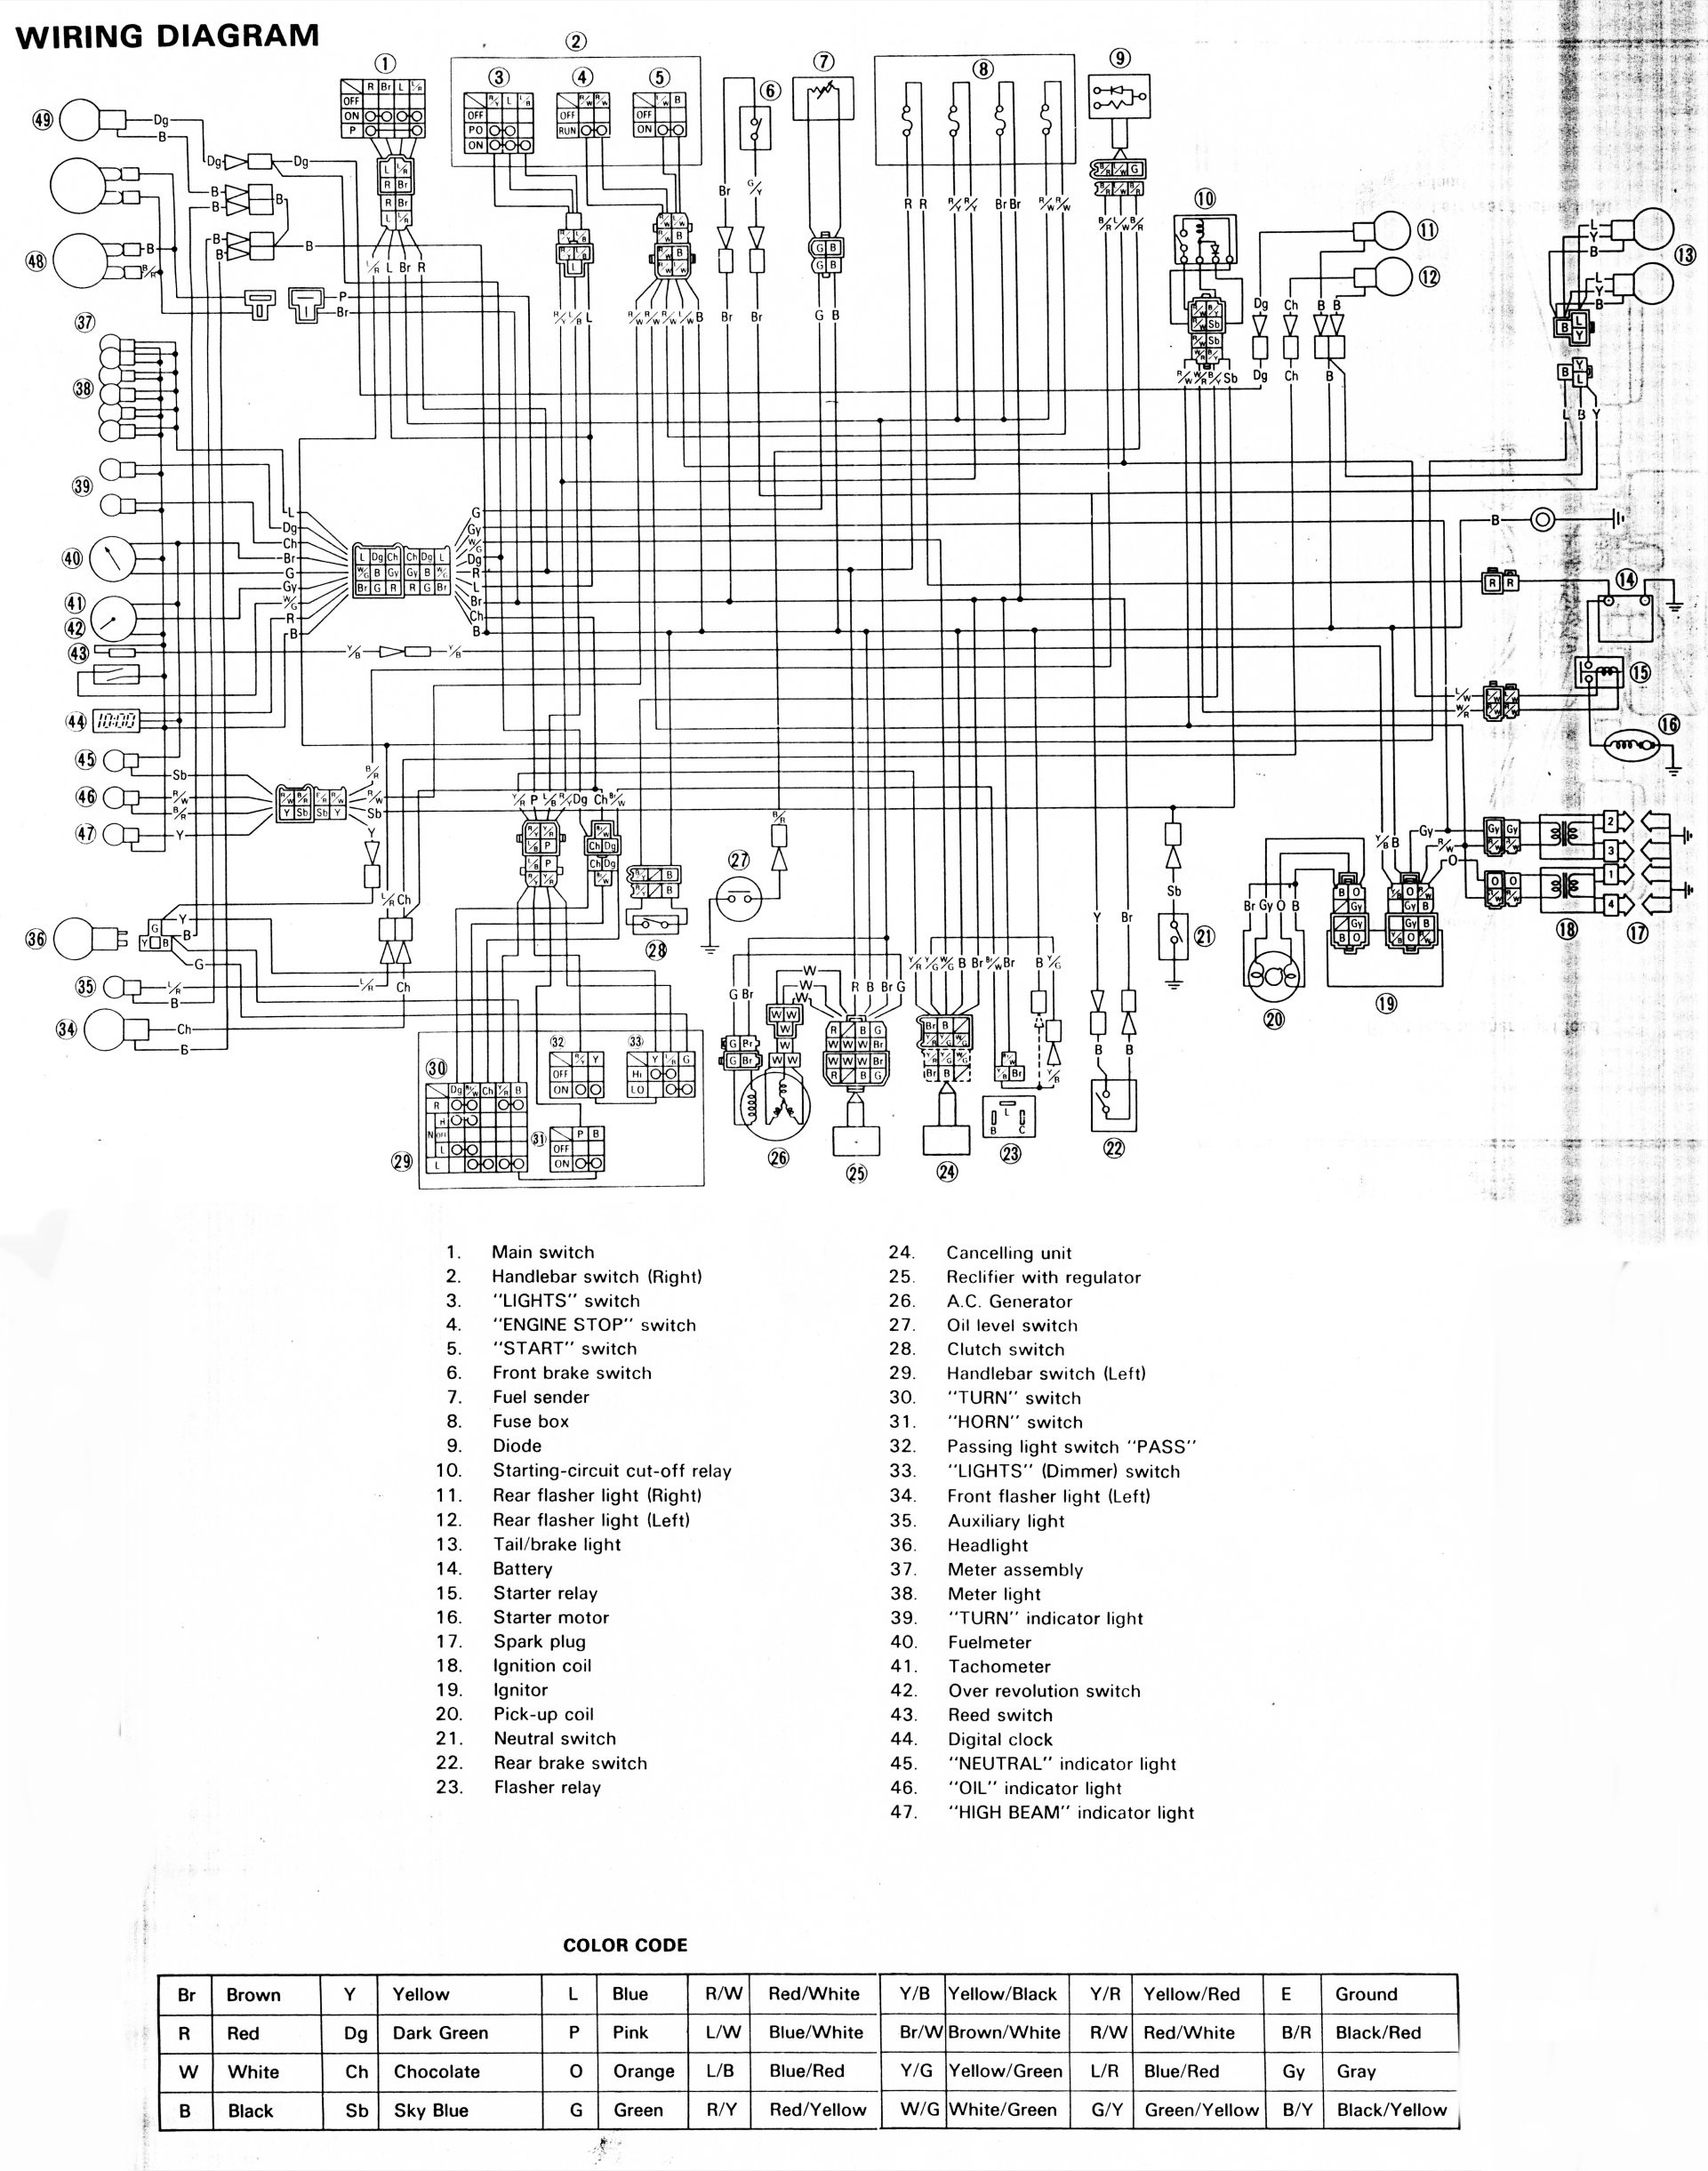 Motorcycle Electrical Wiring Diagram 853cc Yamaha Xj900 Sport Bike Wiring Diagram Binatani Of Motorcycle Electrical Wiring Diagram